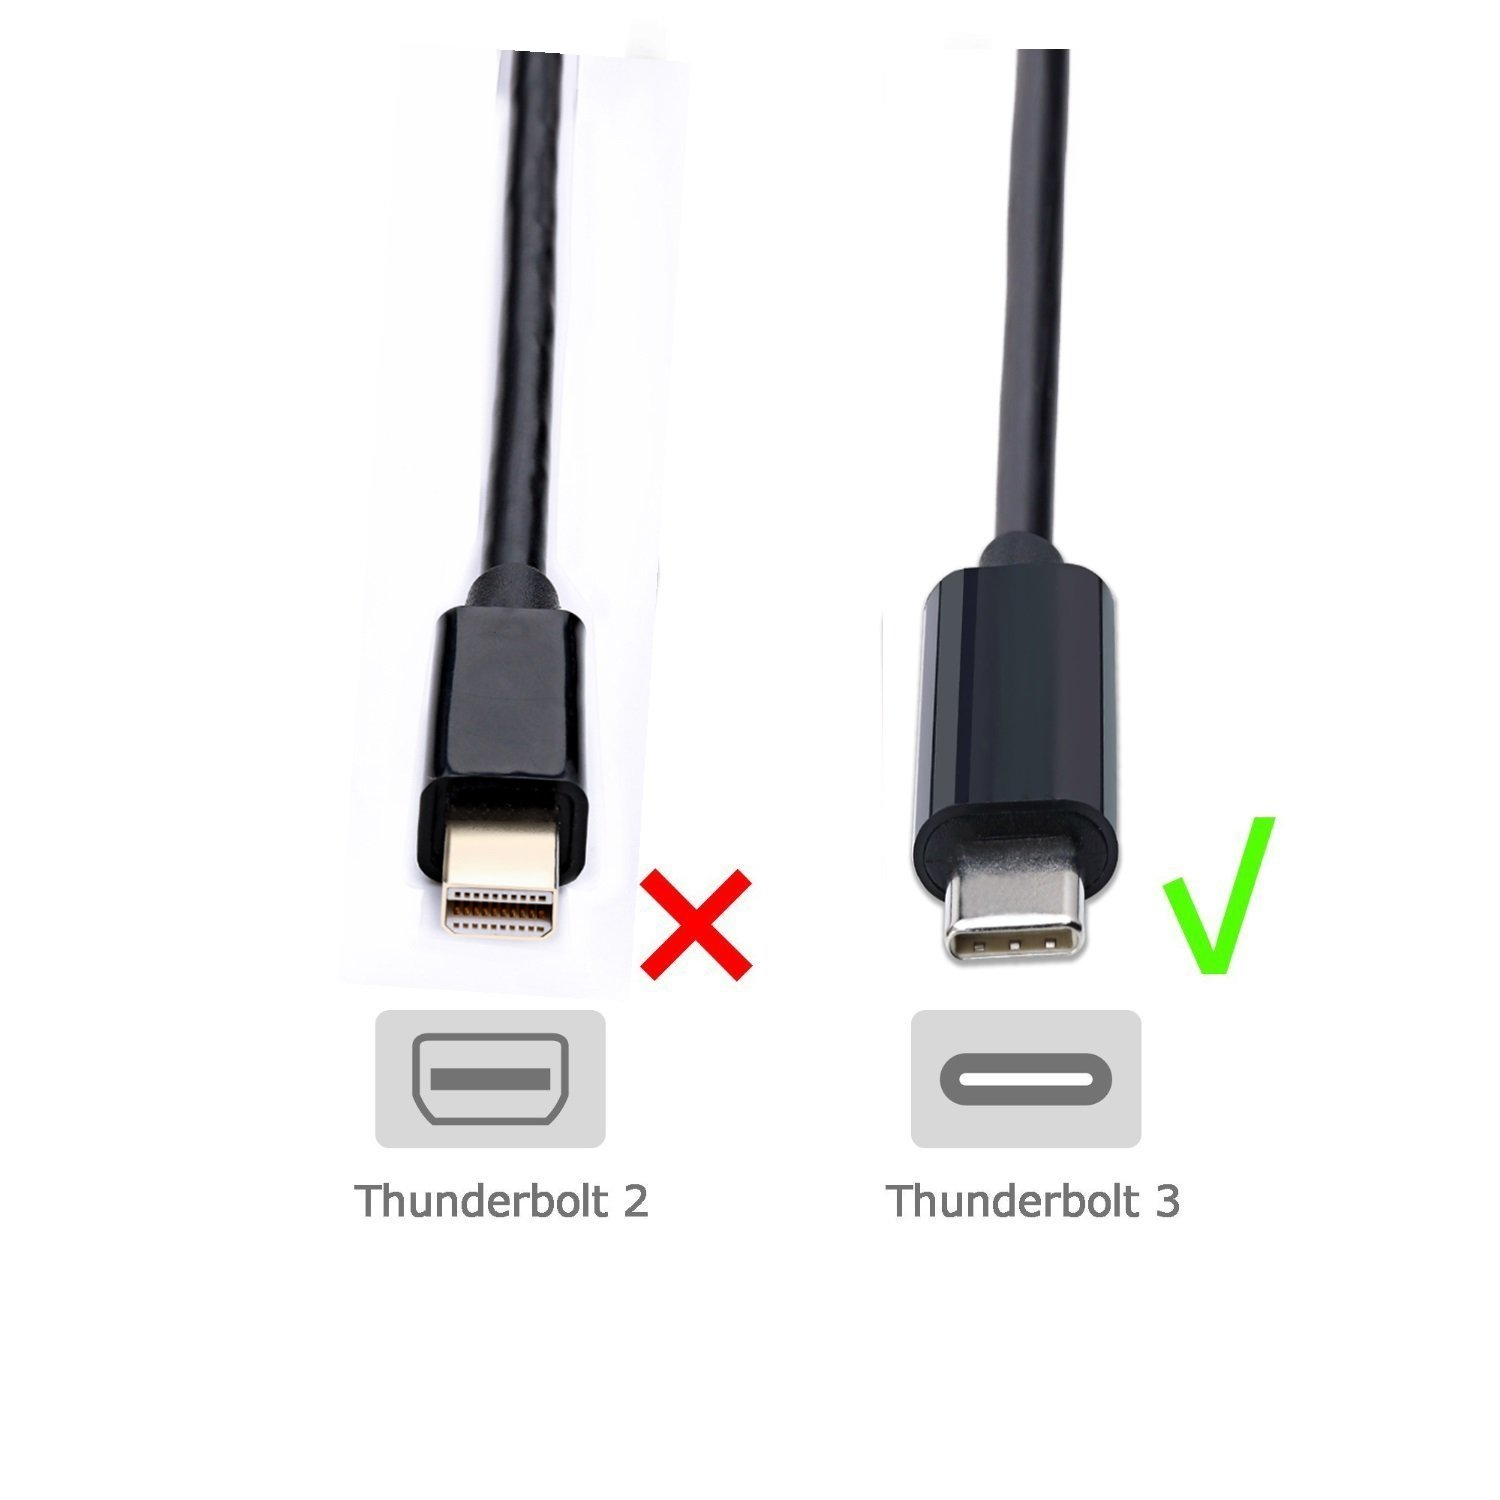 CABLEDECONN USB C to DVI Cable USB 3.1 Type C to DVI M Adapter Cable 1.8M for 2017 MacBook Pro Components Other D0305 Black USB-C